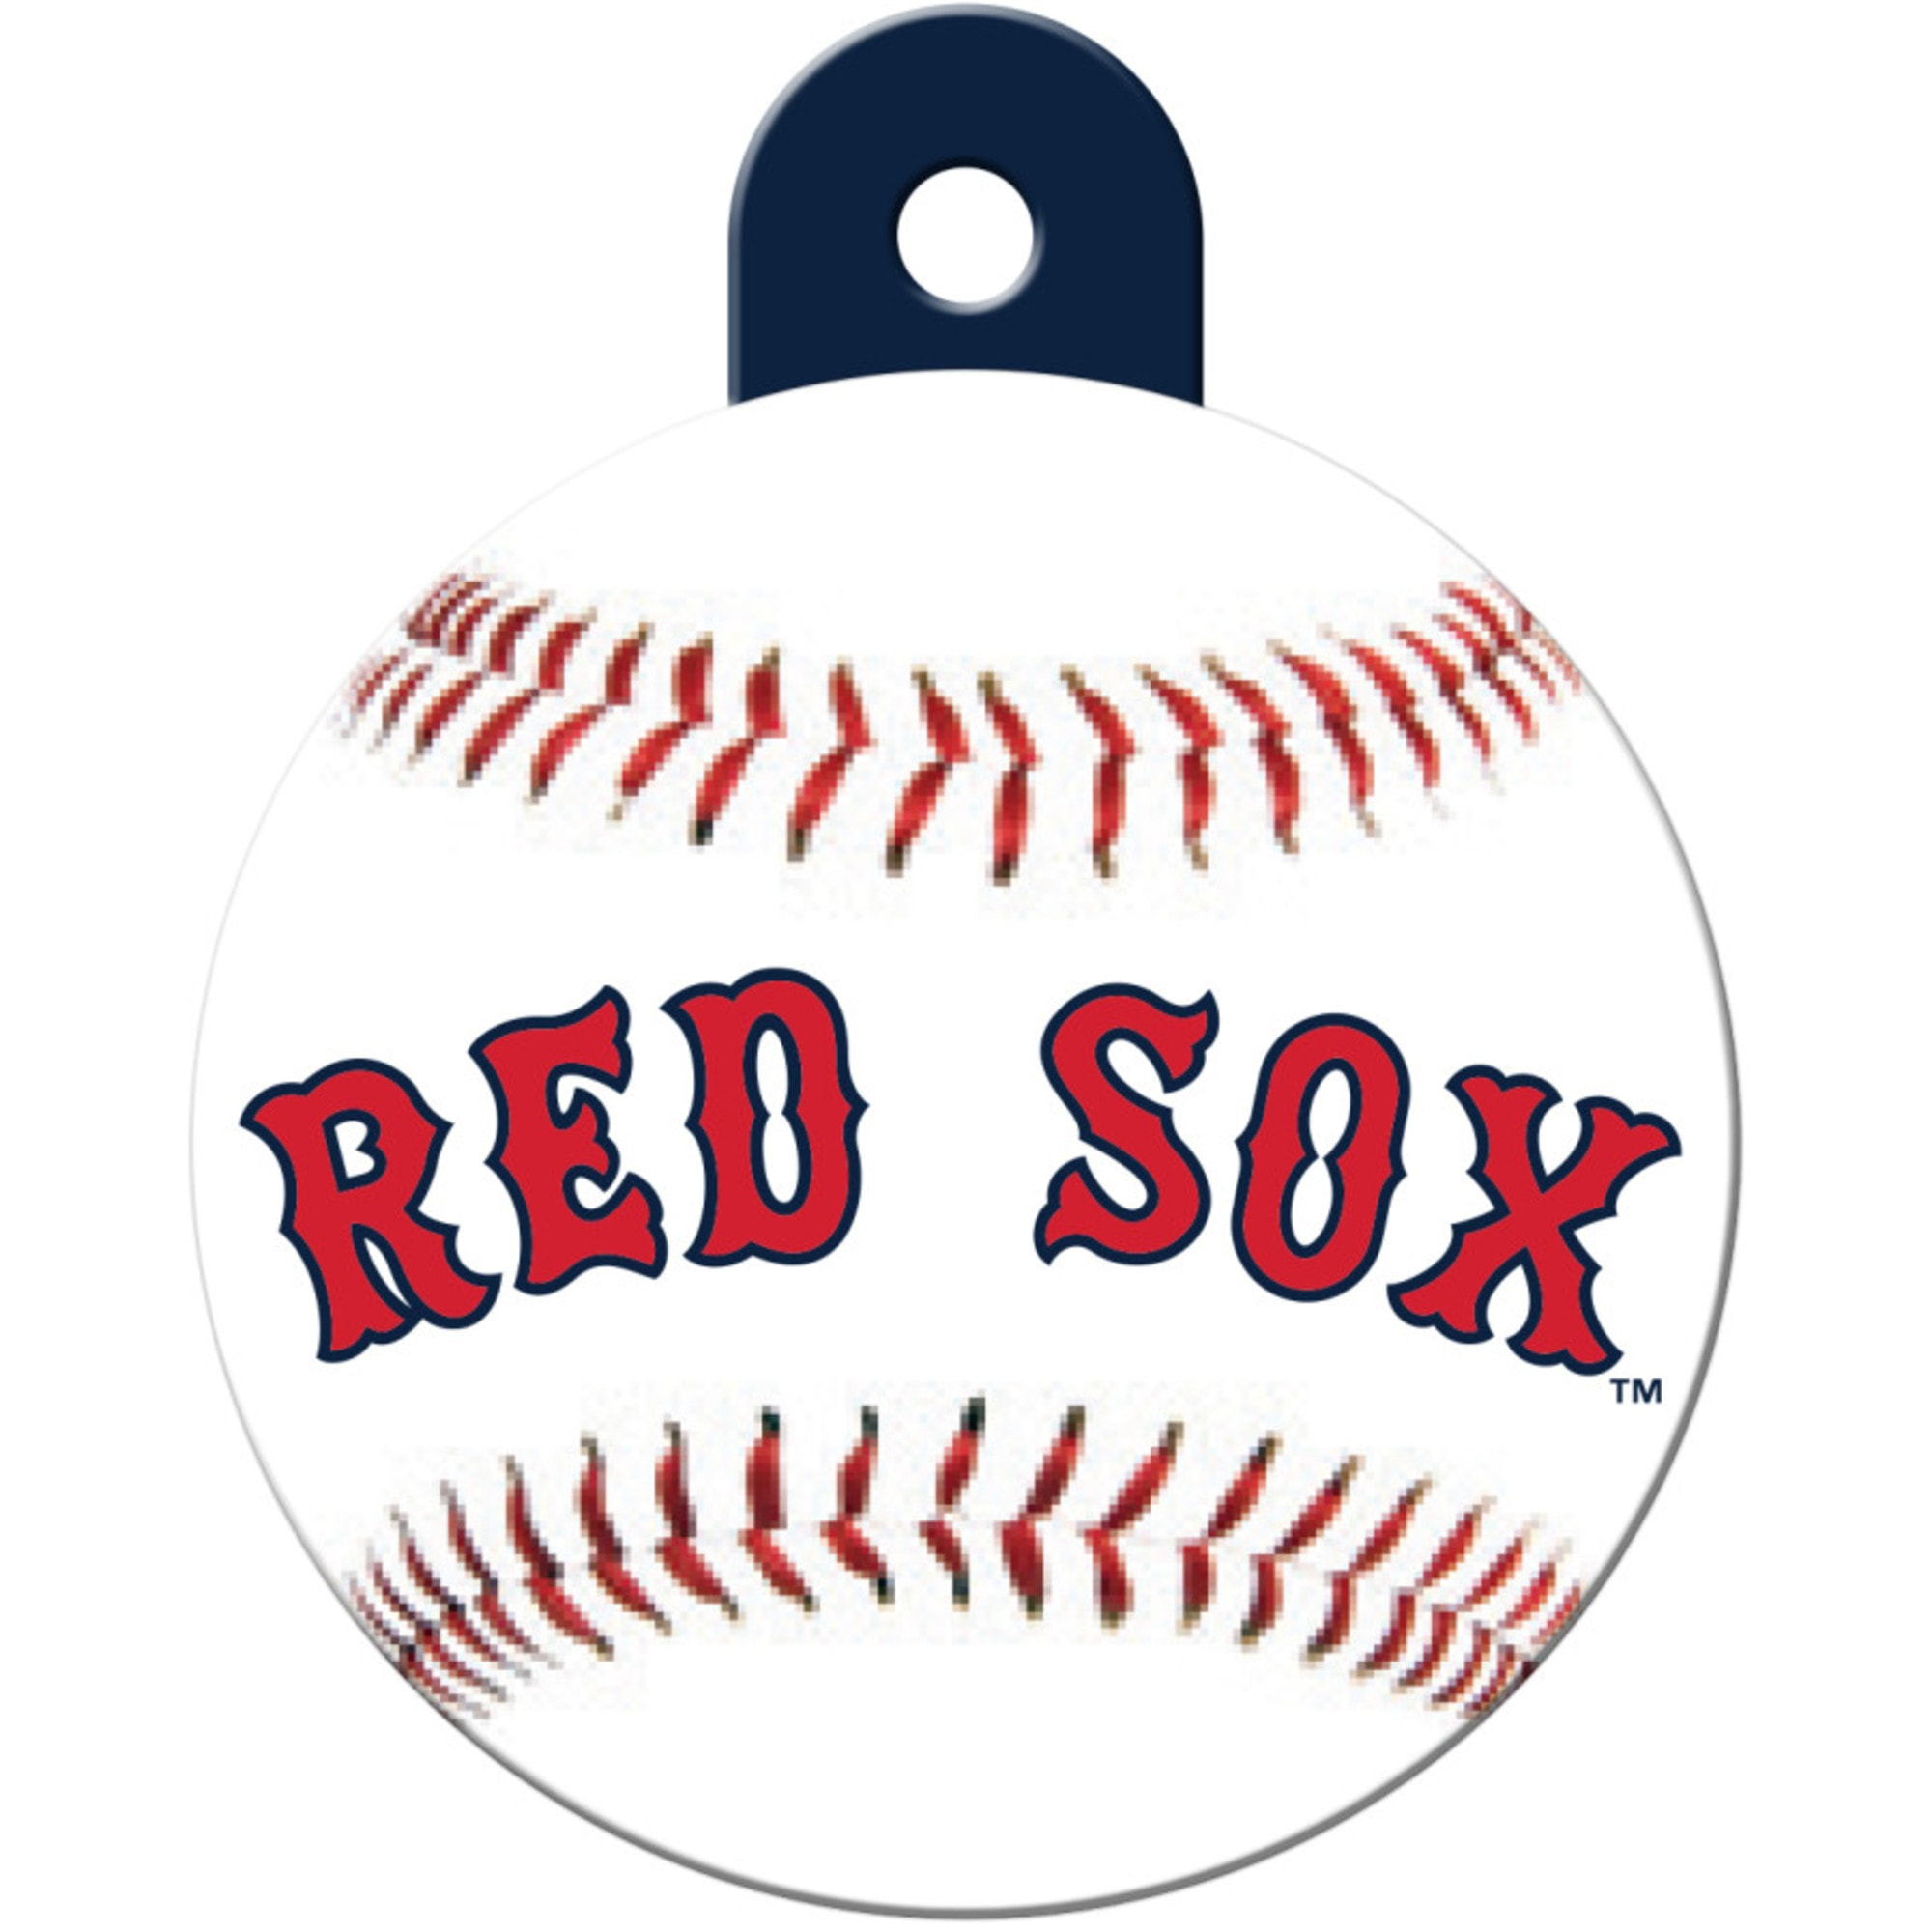 Quick Tag Boston Red Sox Mlb Personalized Engraved Pet Id Tag 1 1 4 W X 1 1 2 H Petco